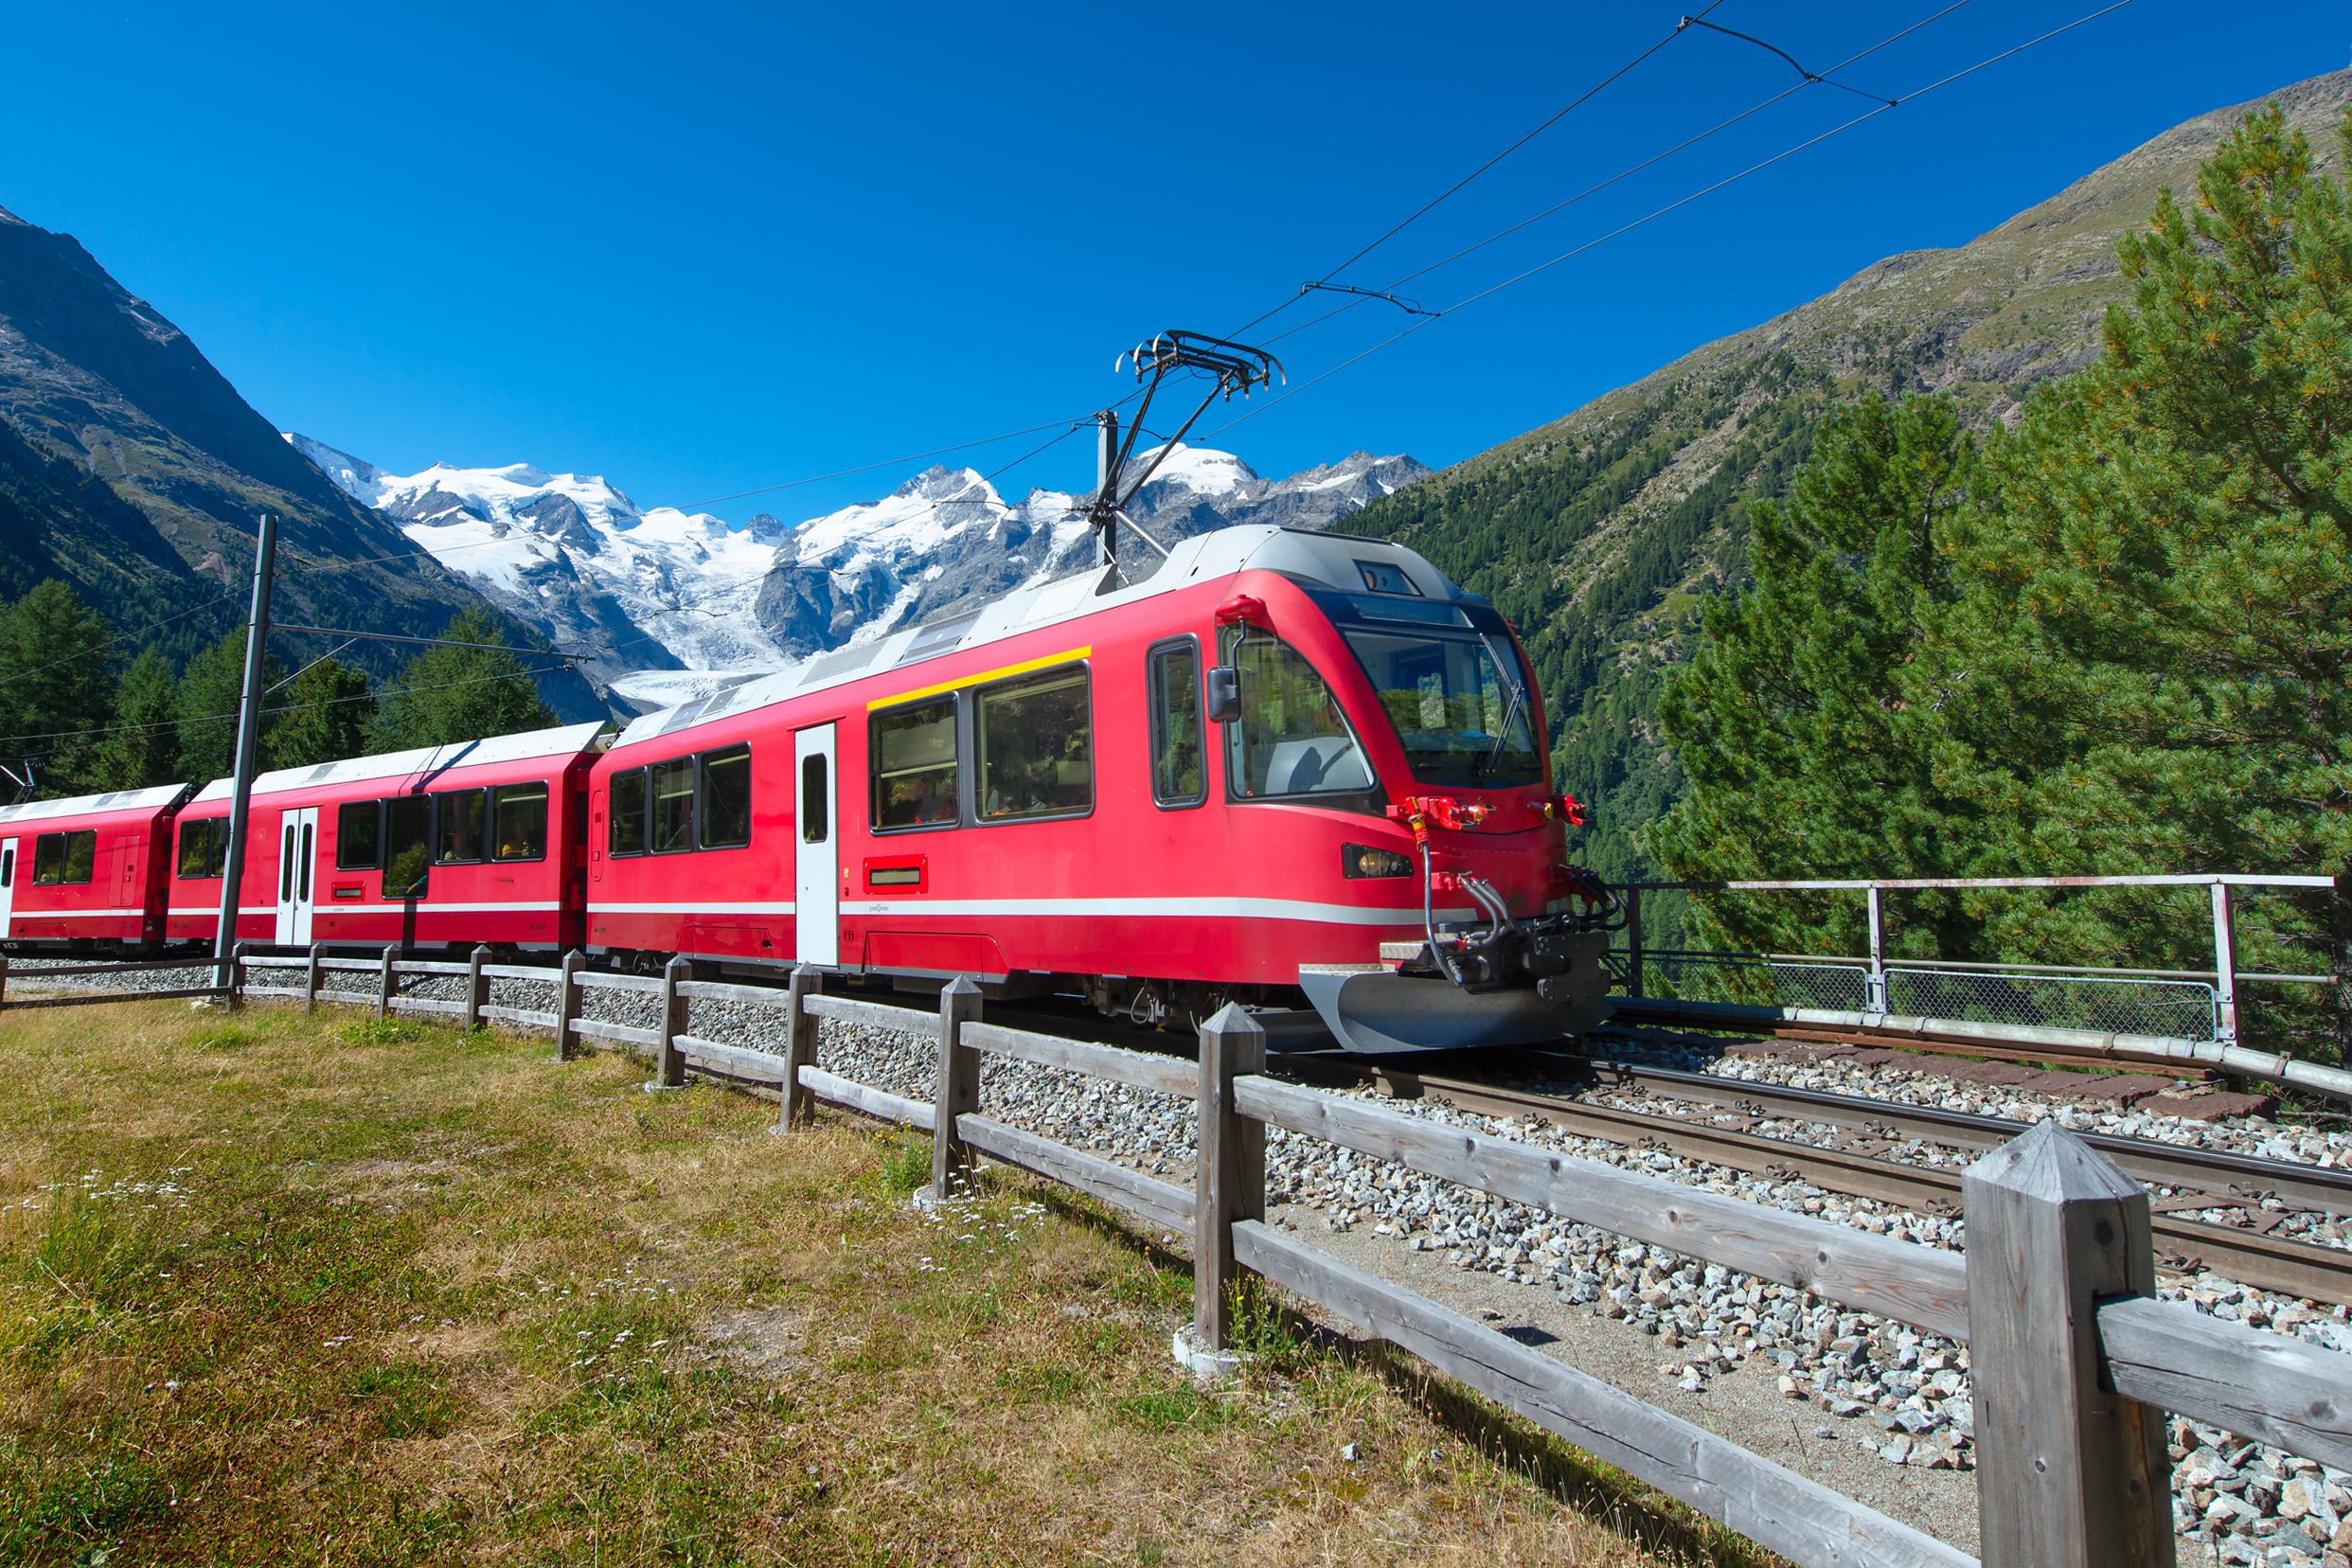 A red train through the mountains